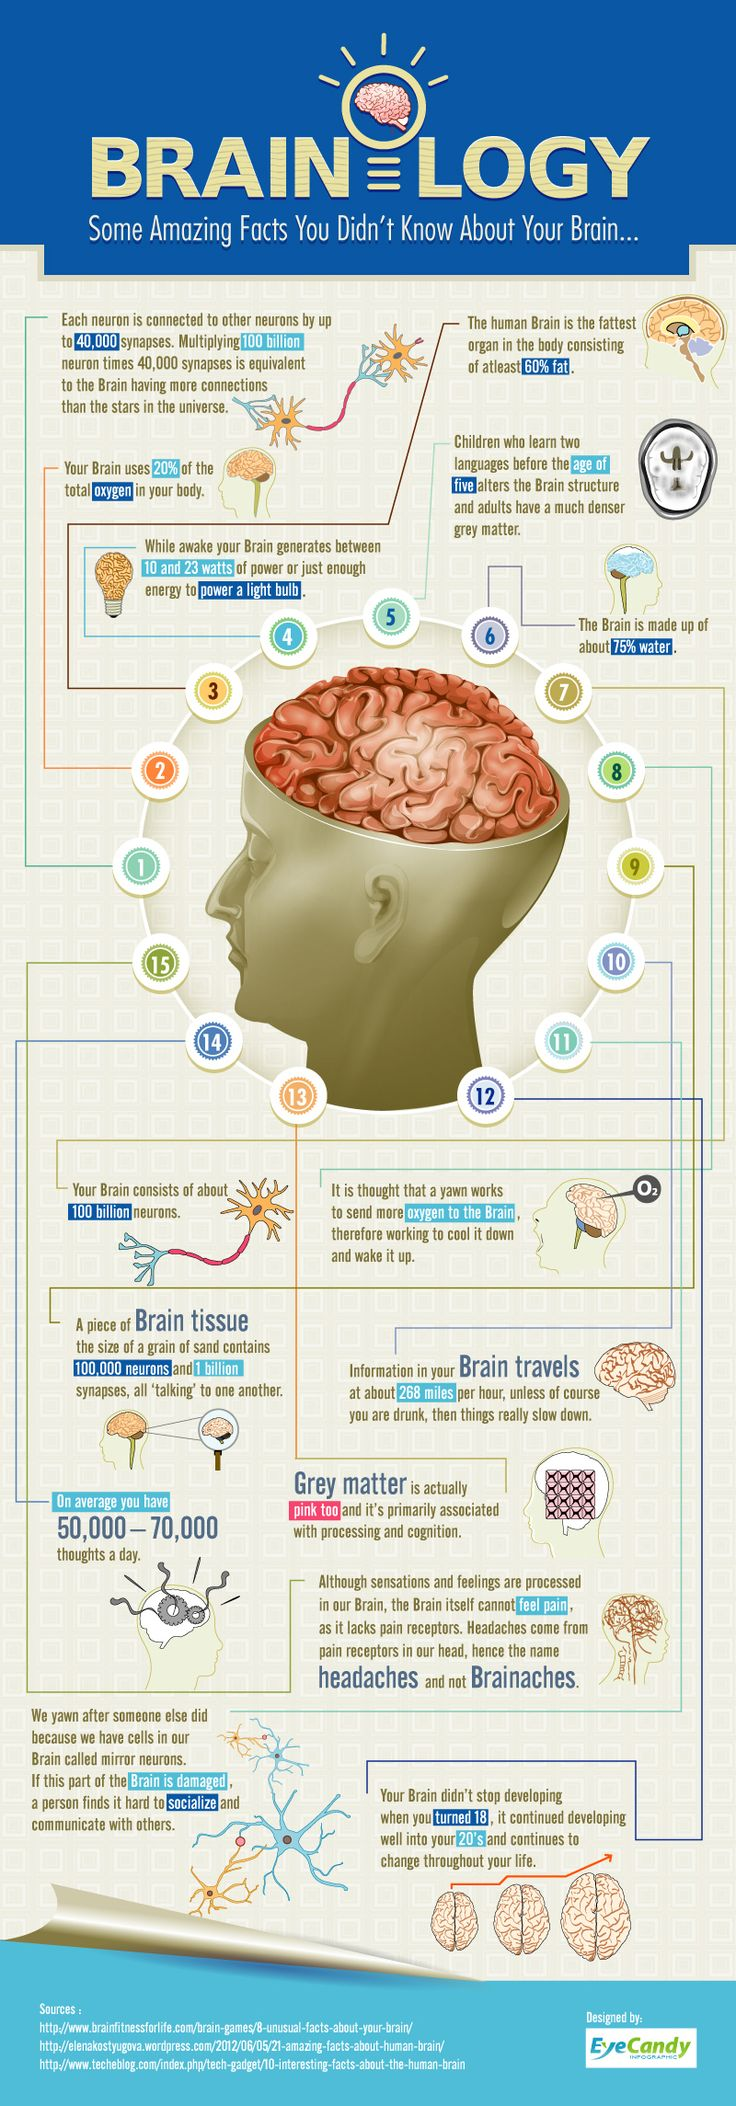 **Would have been nice to have had some brain food facts** Boost Your Brain's Hidden Abilities With These Powerful Facts.